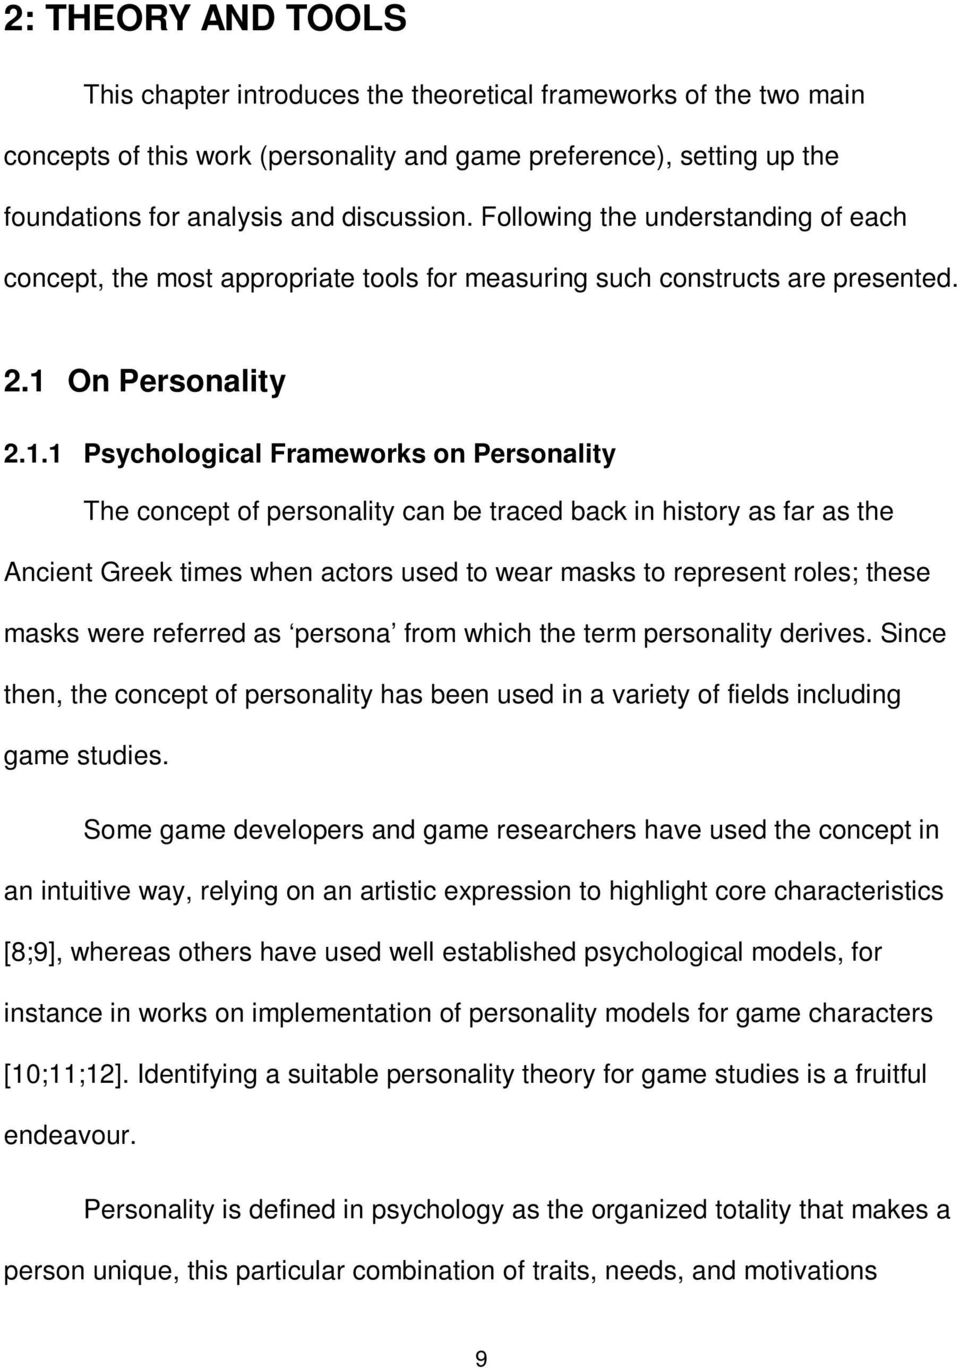 On Personality 2.1.